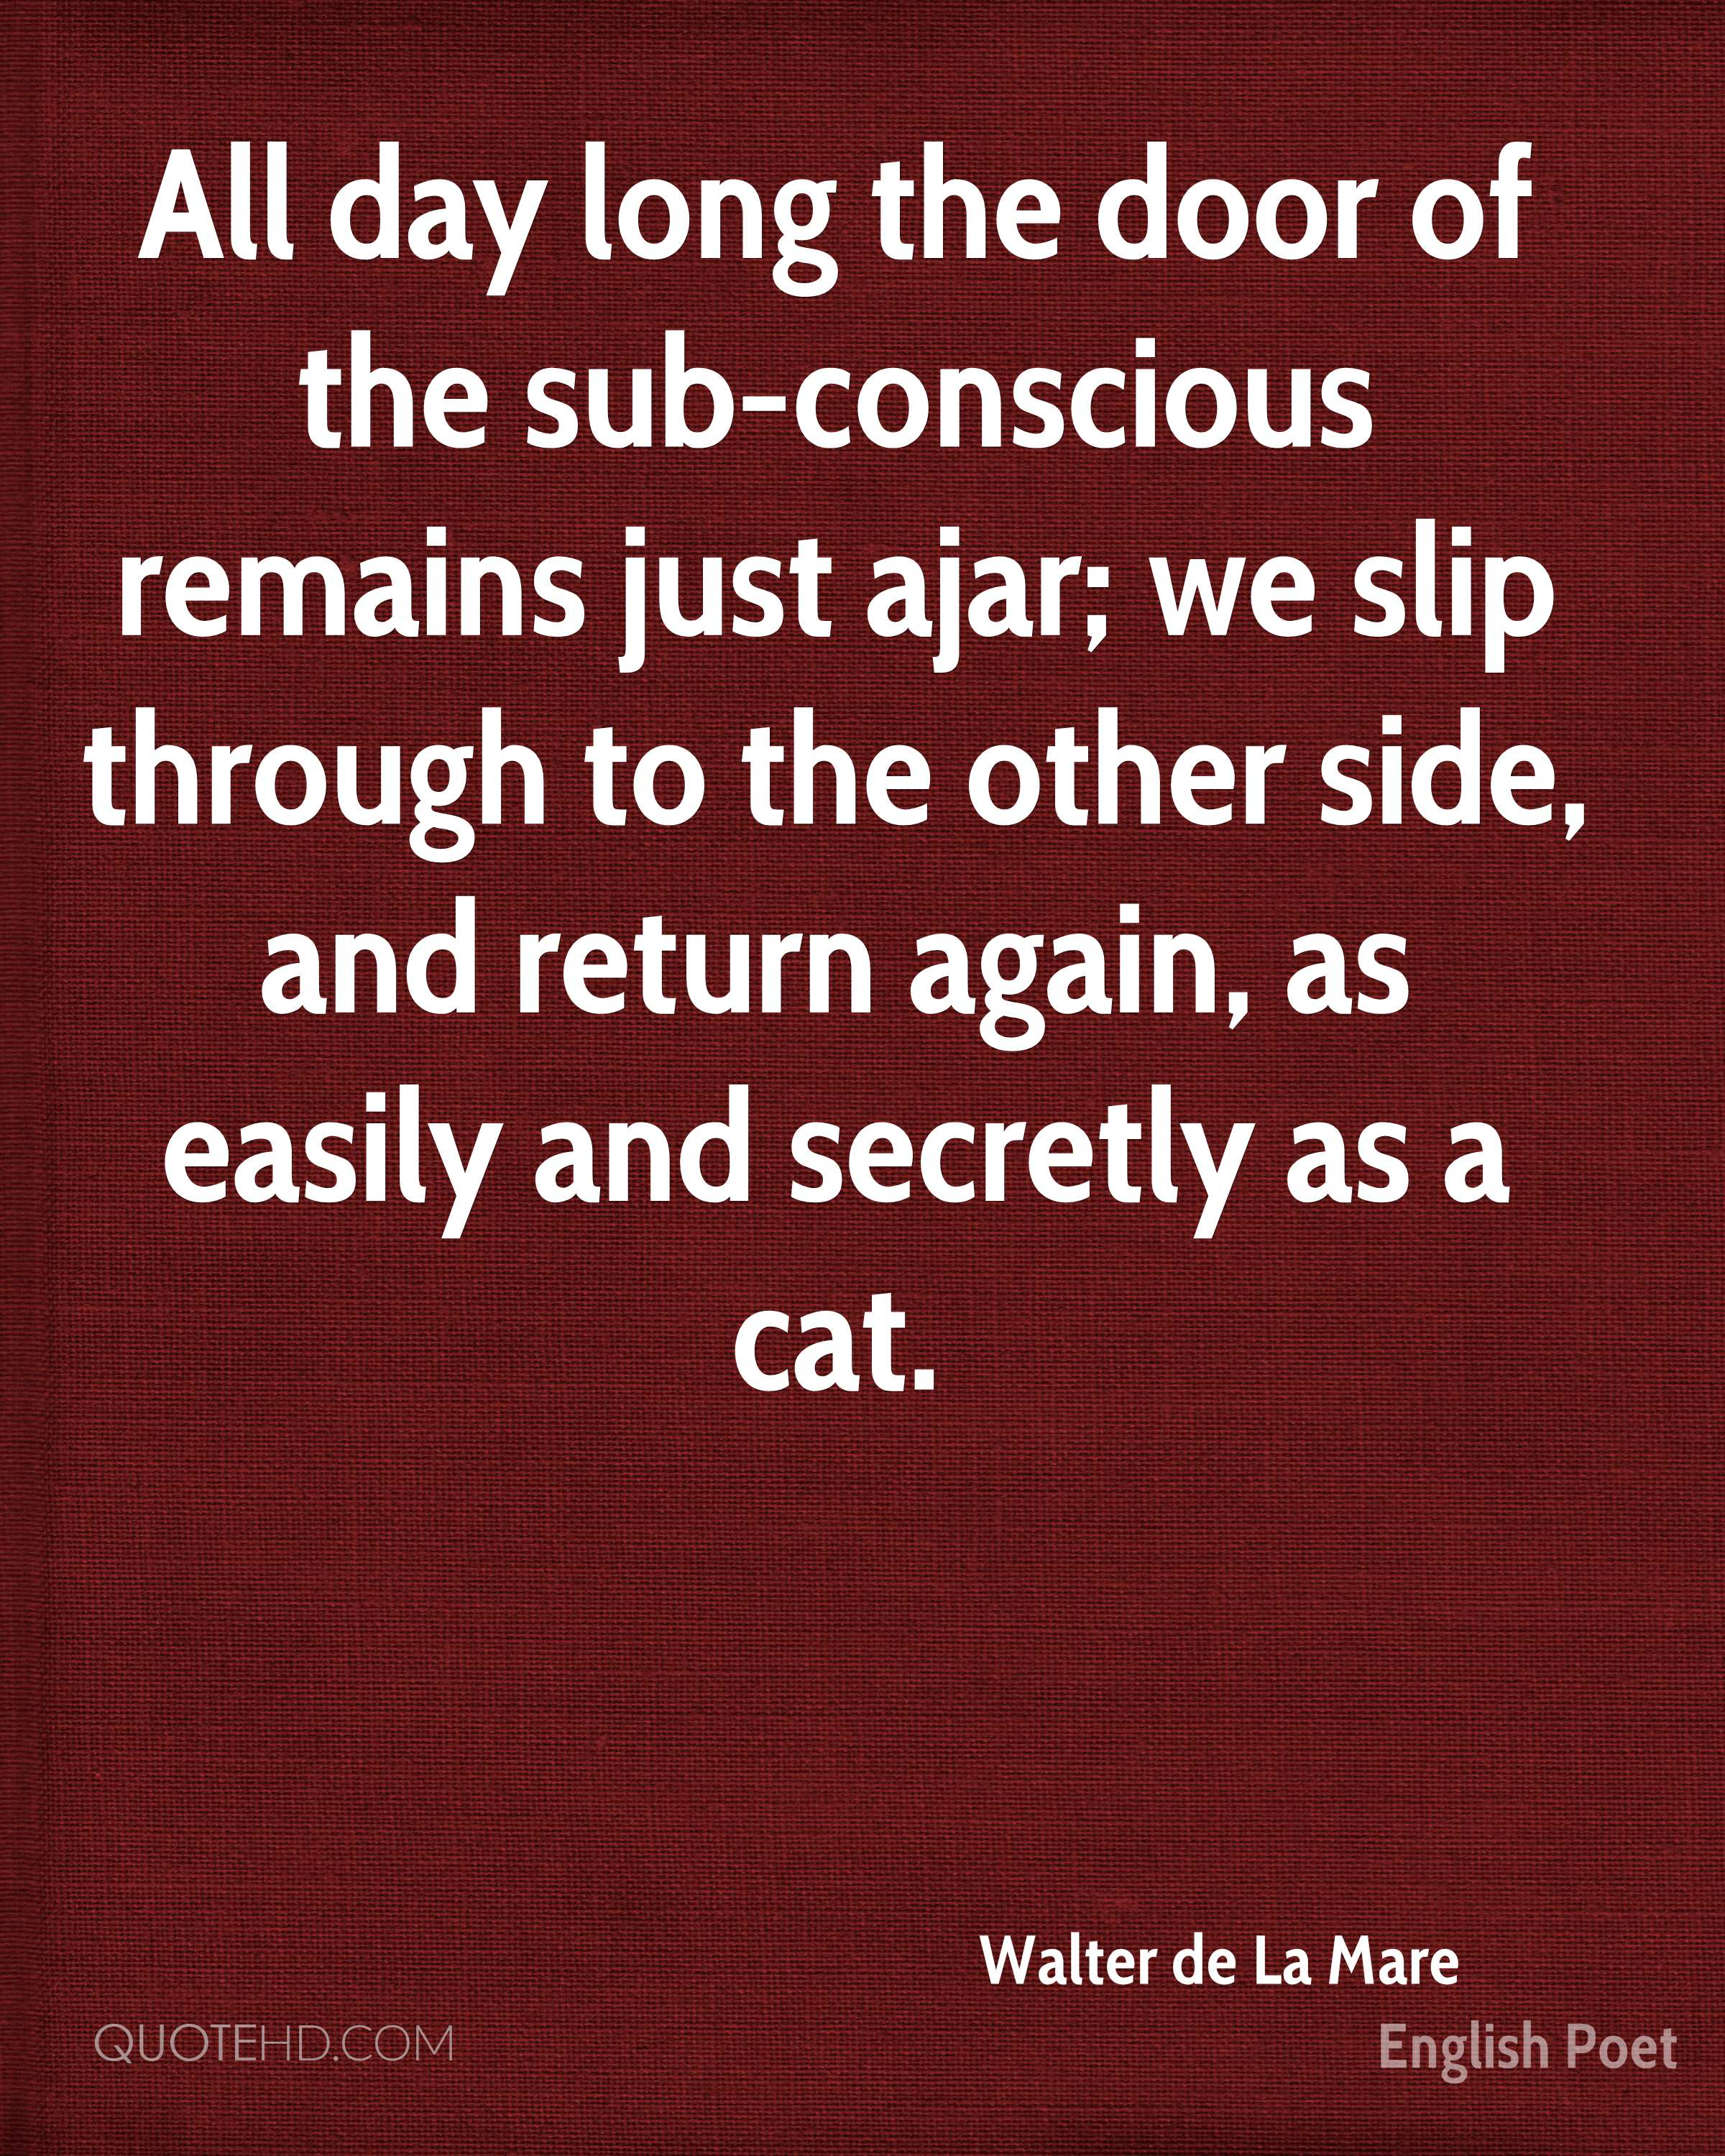 All day long the door of the sub-conscious remains just ajar; we slip through to the other side, and return again, as easily and secretly as a cat.